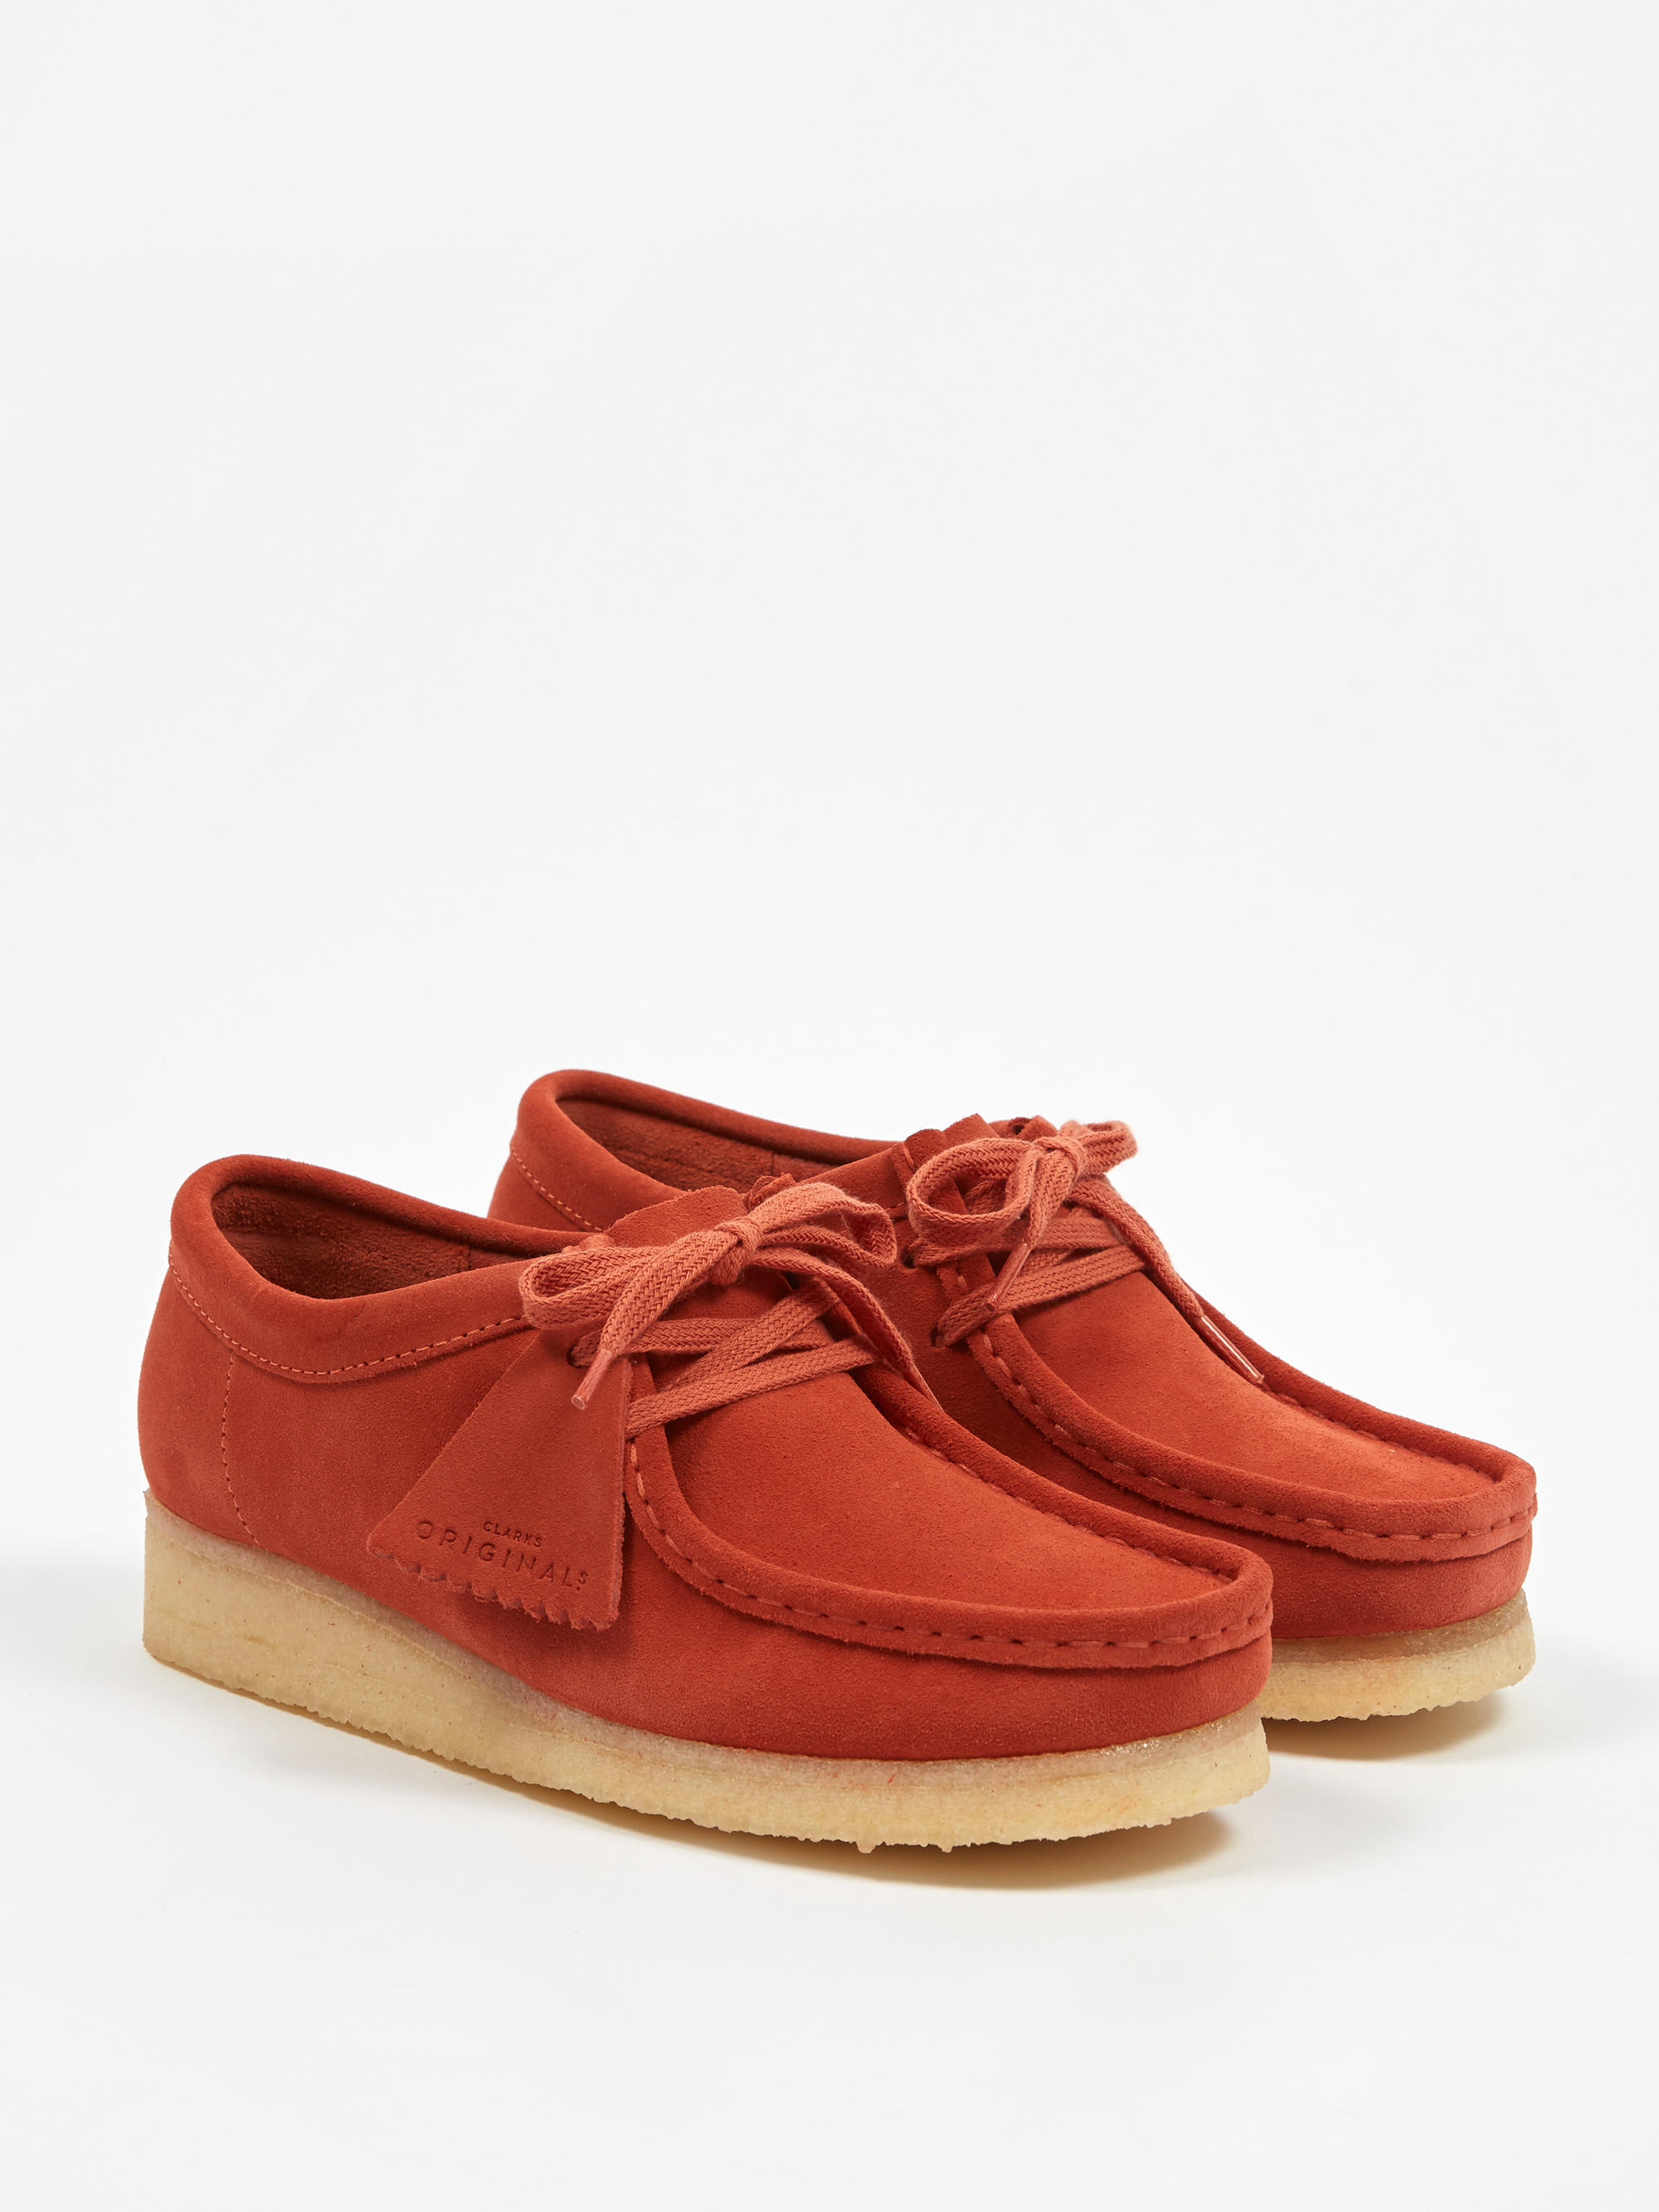 superior quality sports shoes best wholesaler Clarks Wallabee - Burnt Orange